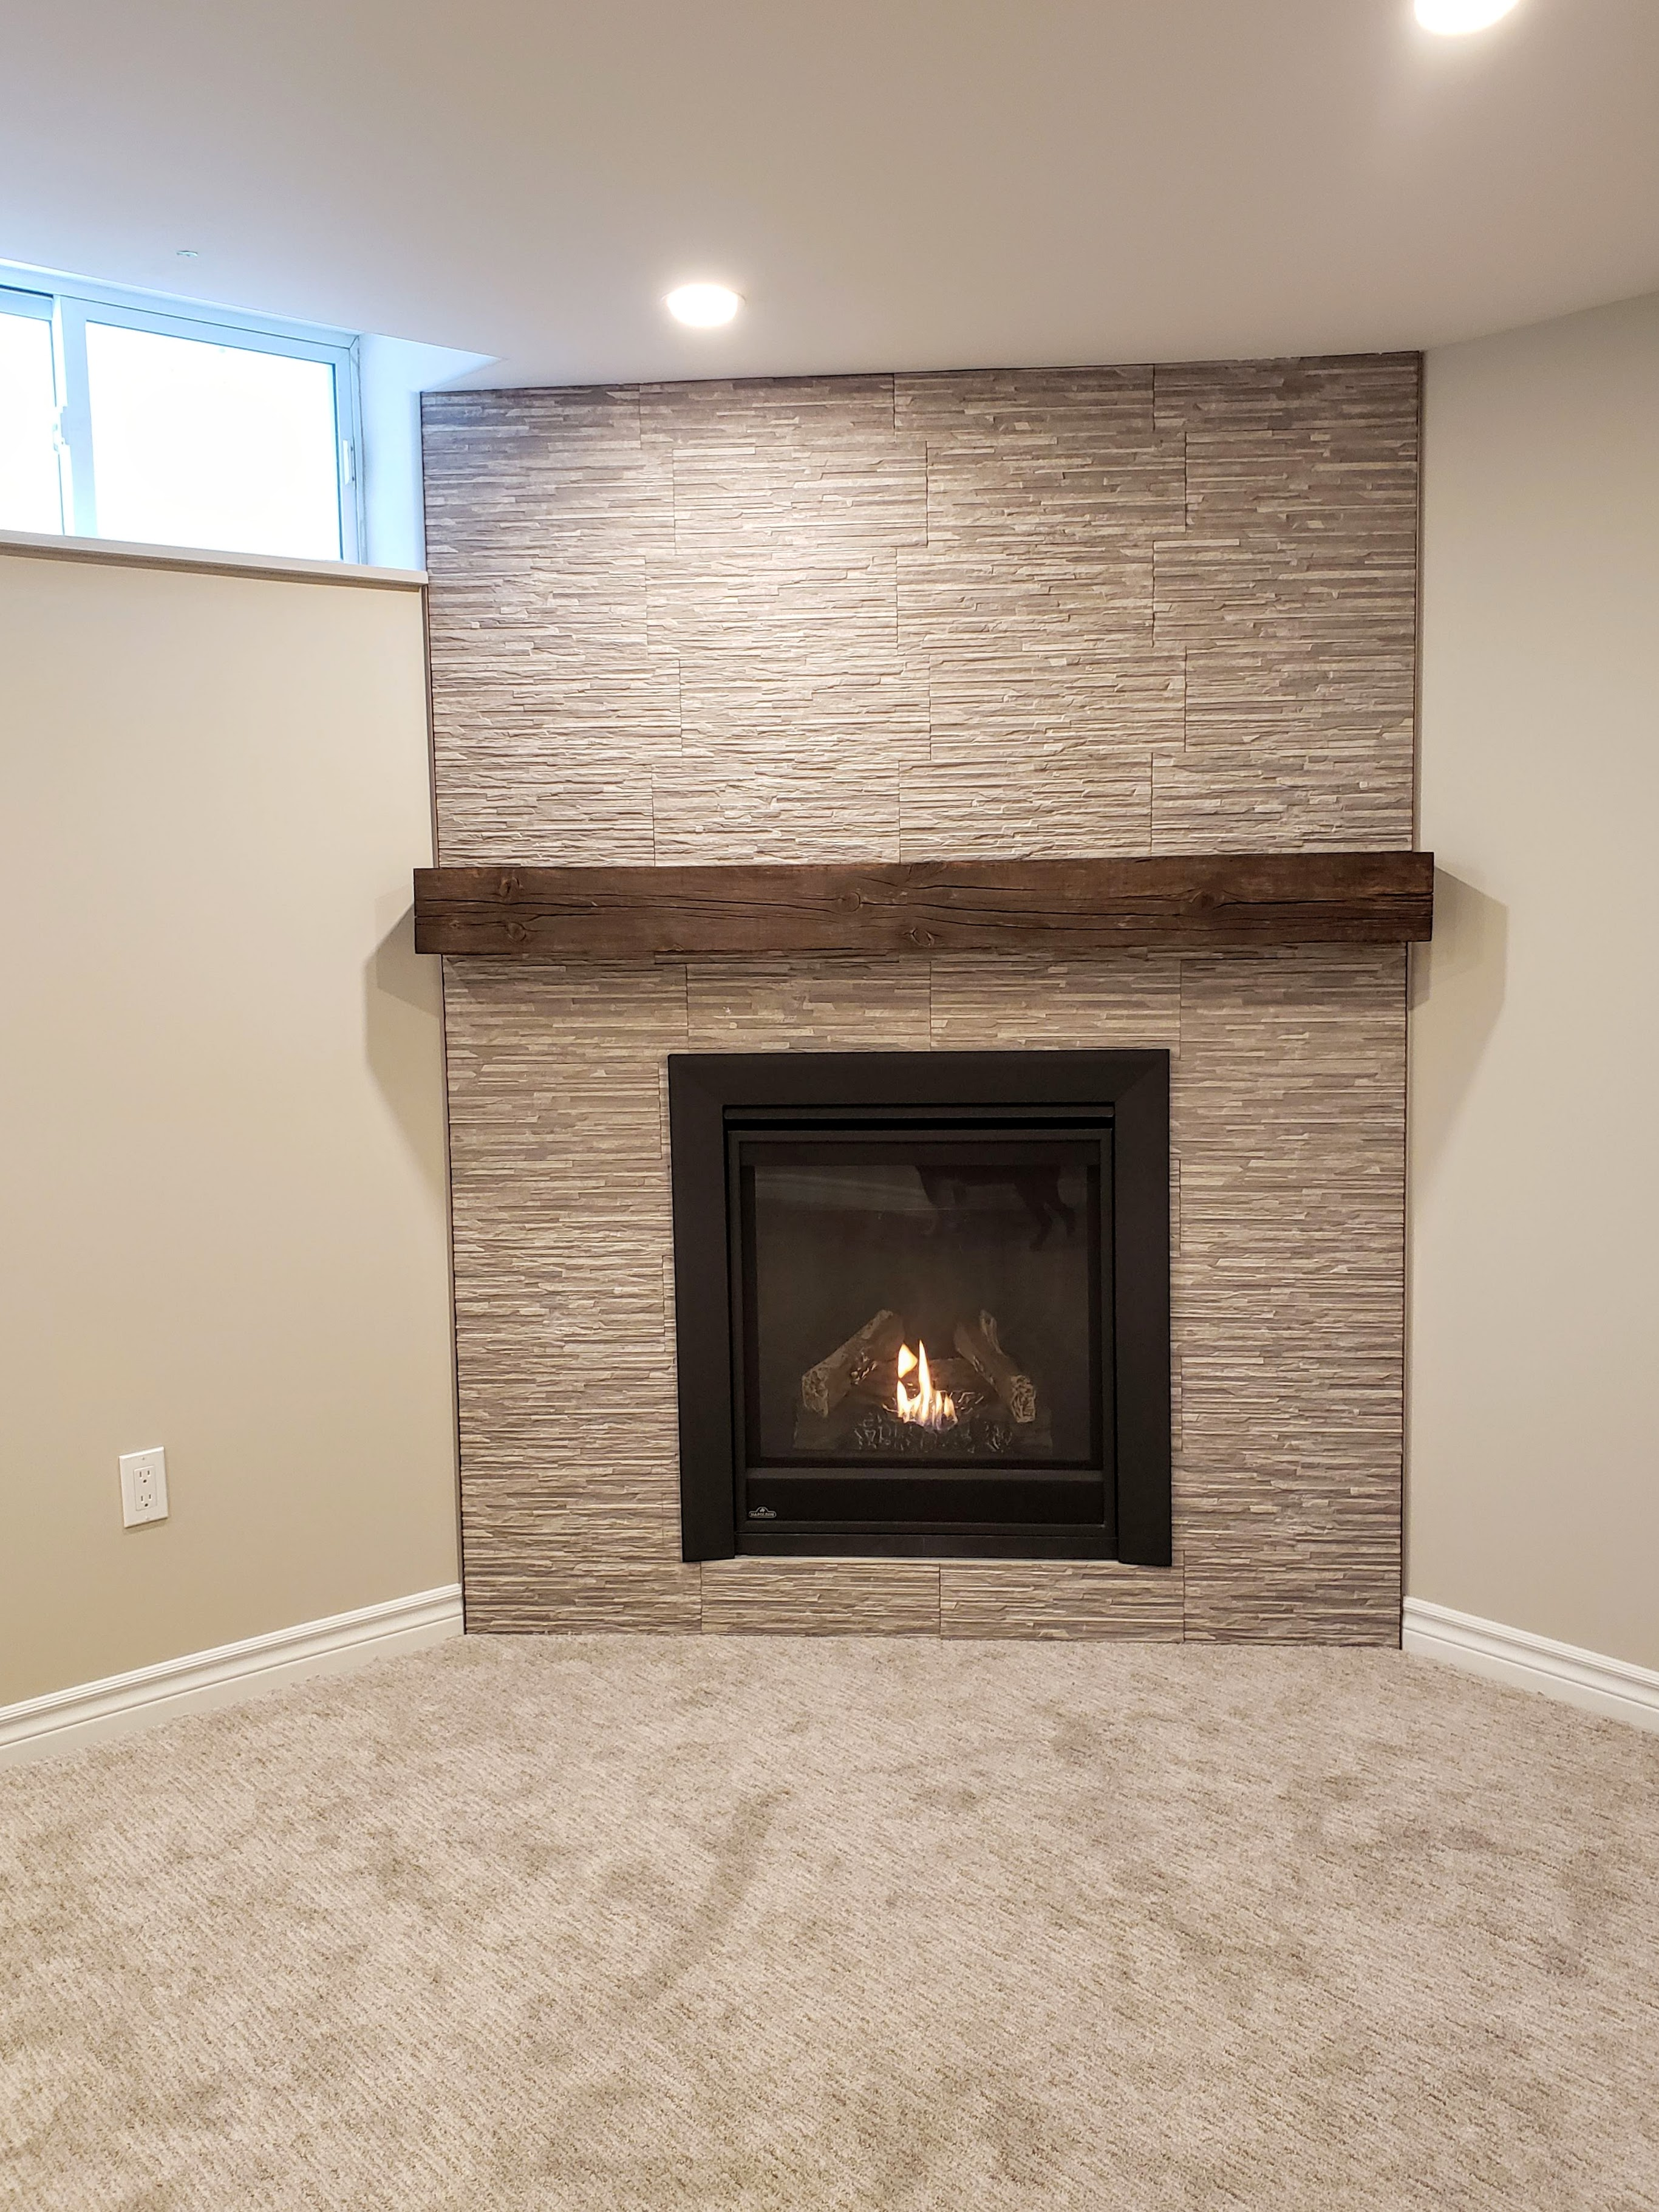 Gas fireplace with tile surround and rustic mantel by Germano Creative Interior Contracting Ltd.